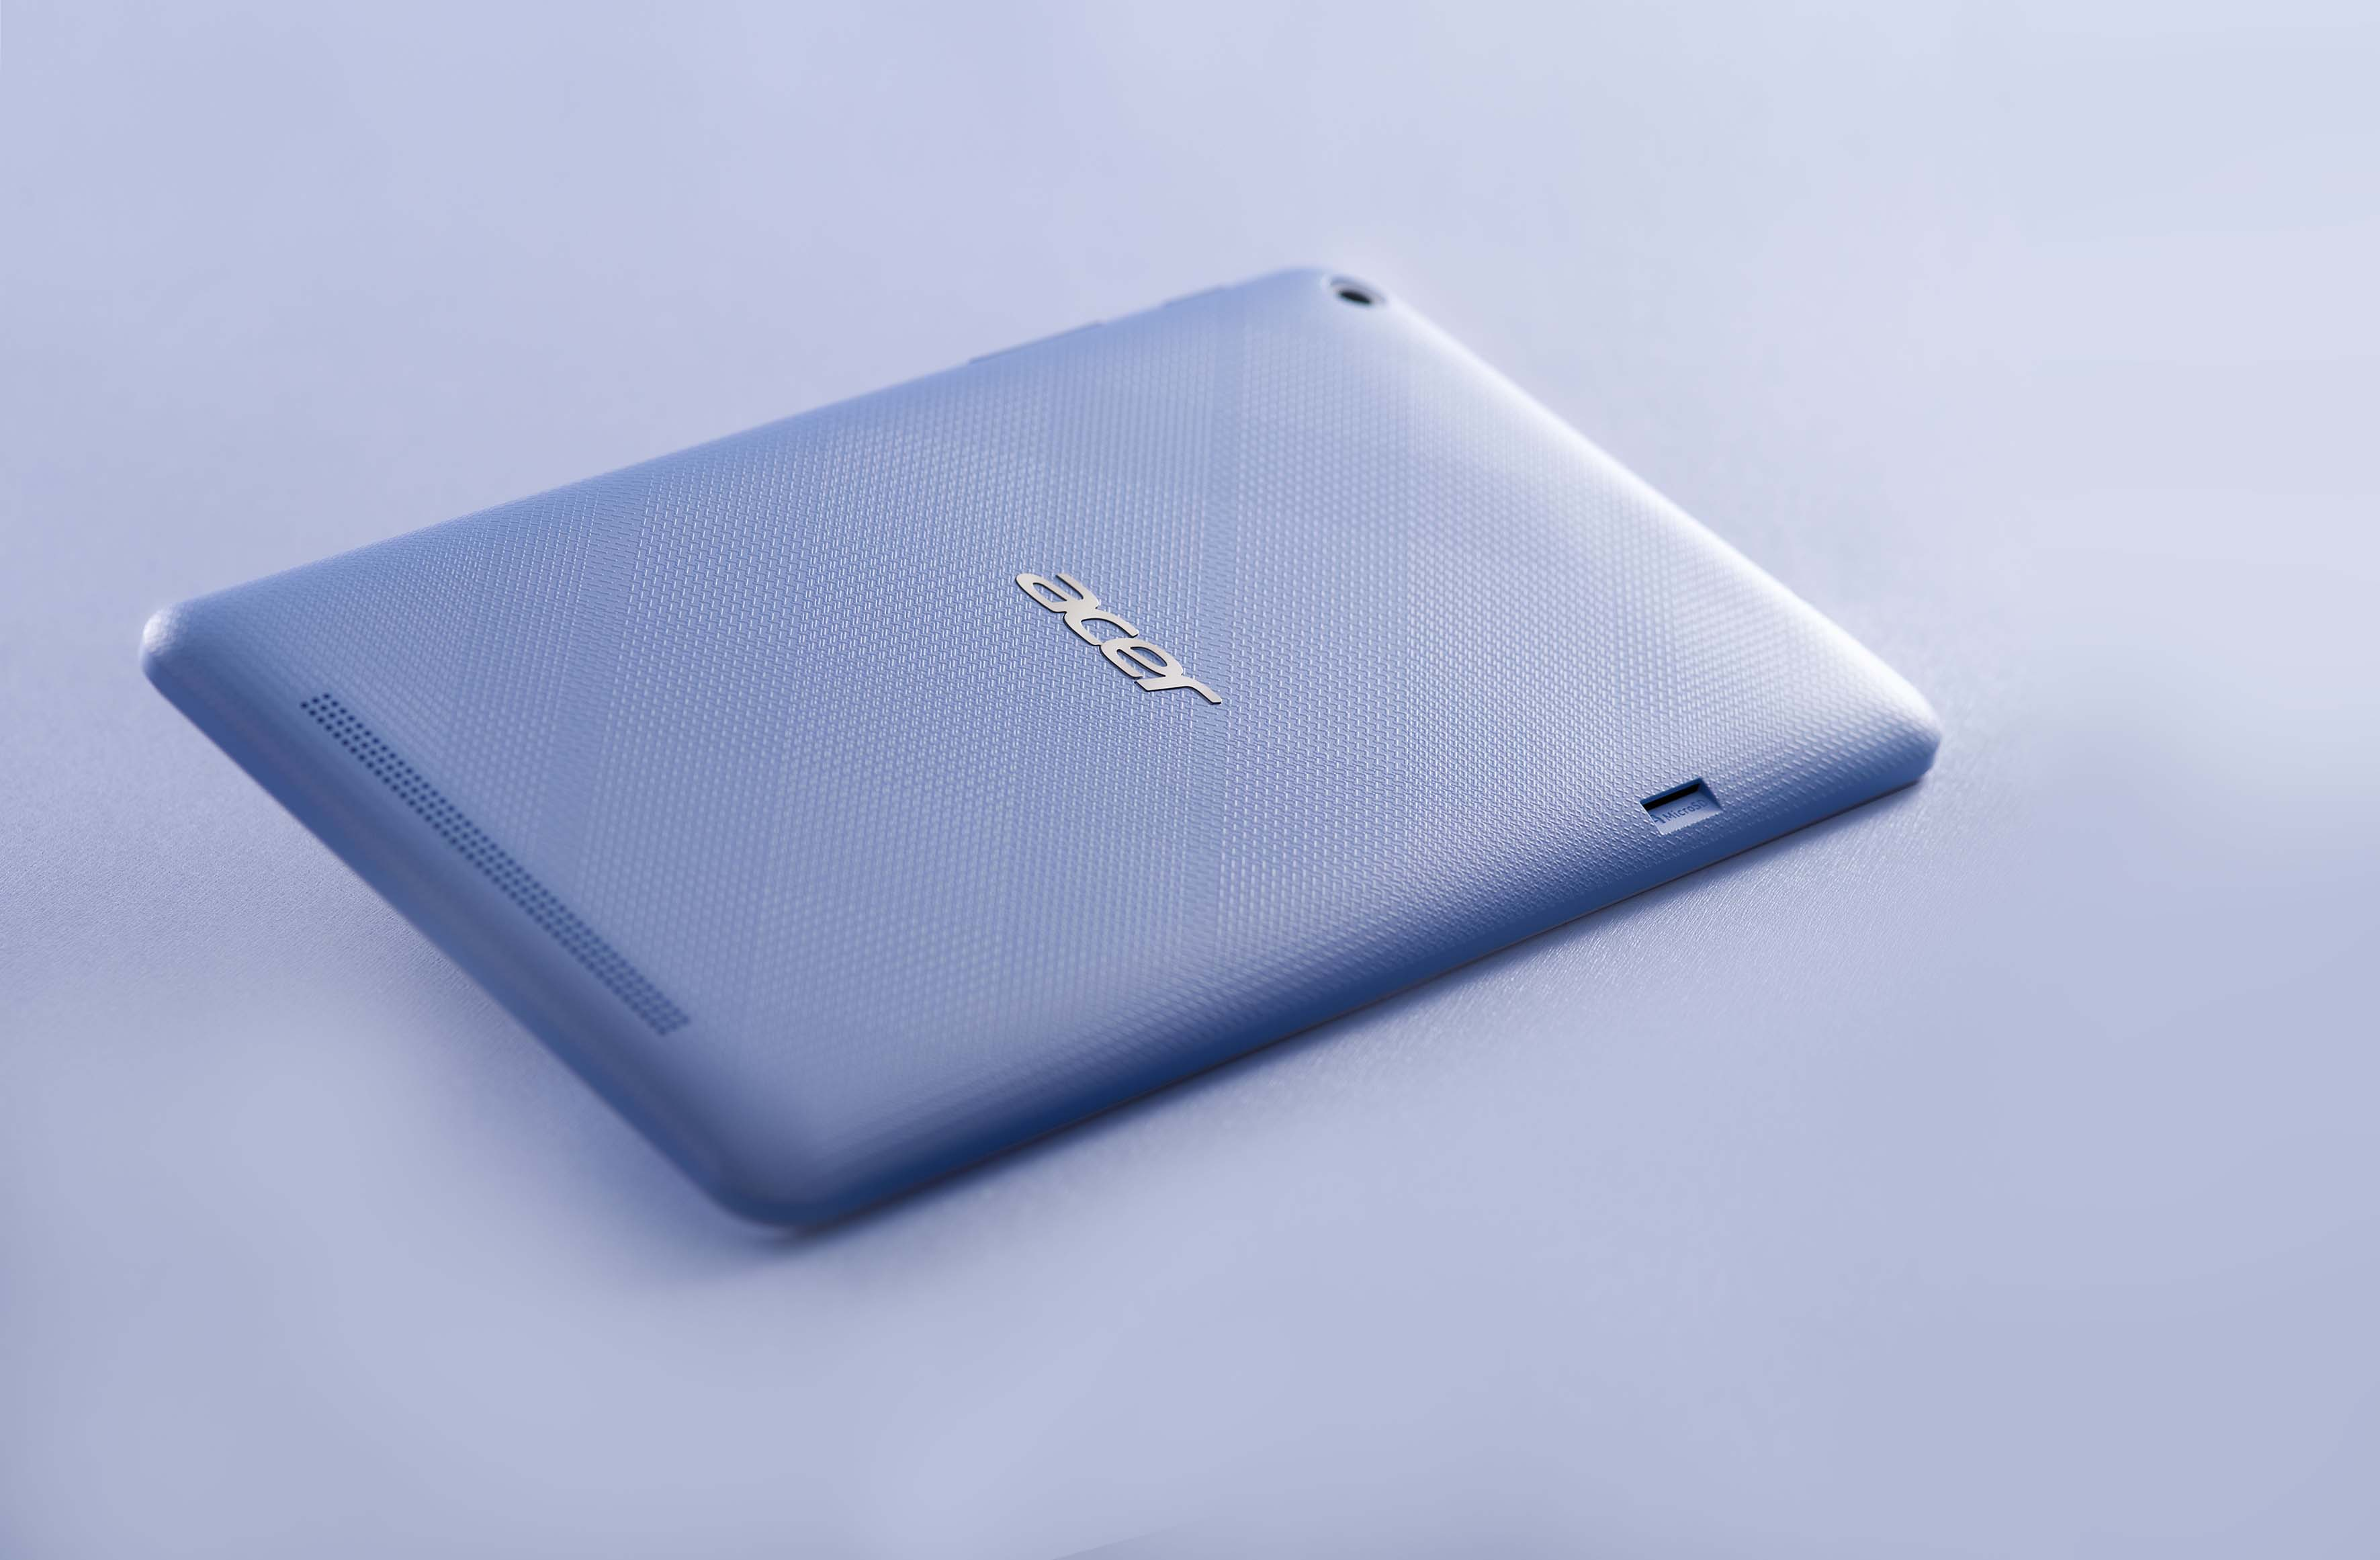 Acer_Tablet_Iconia_One_8_B1-820_Blue_05